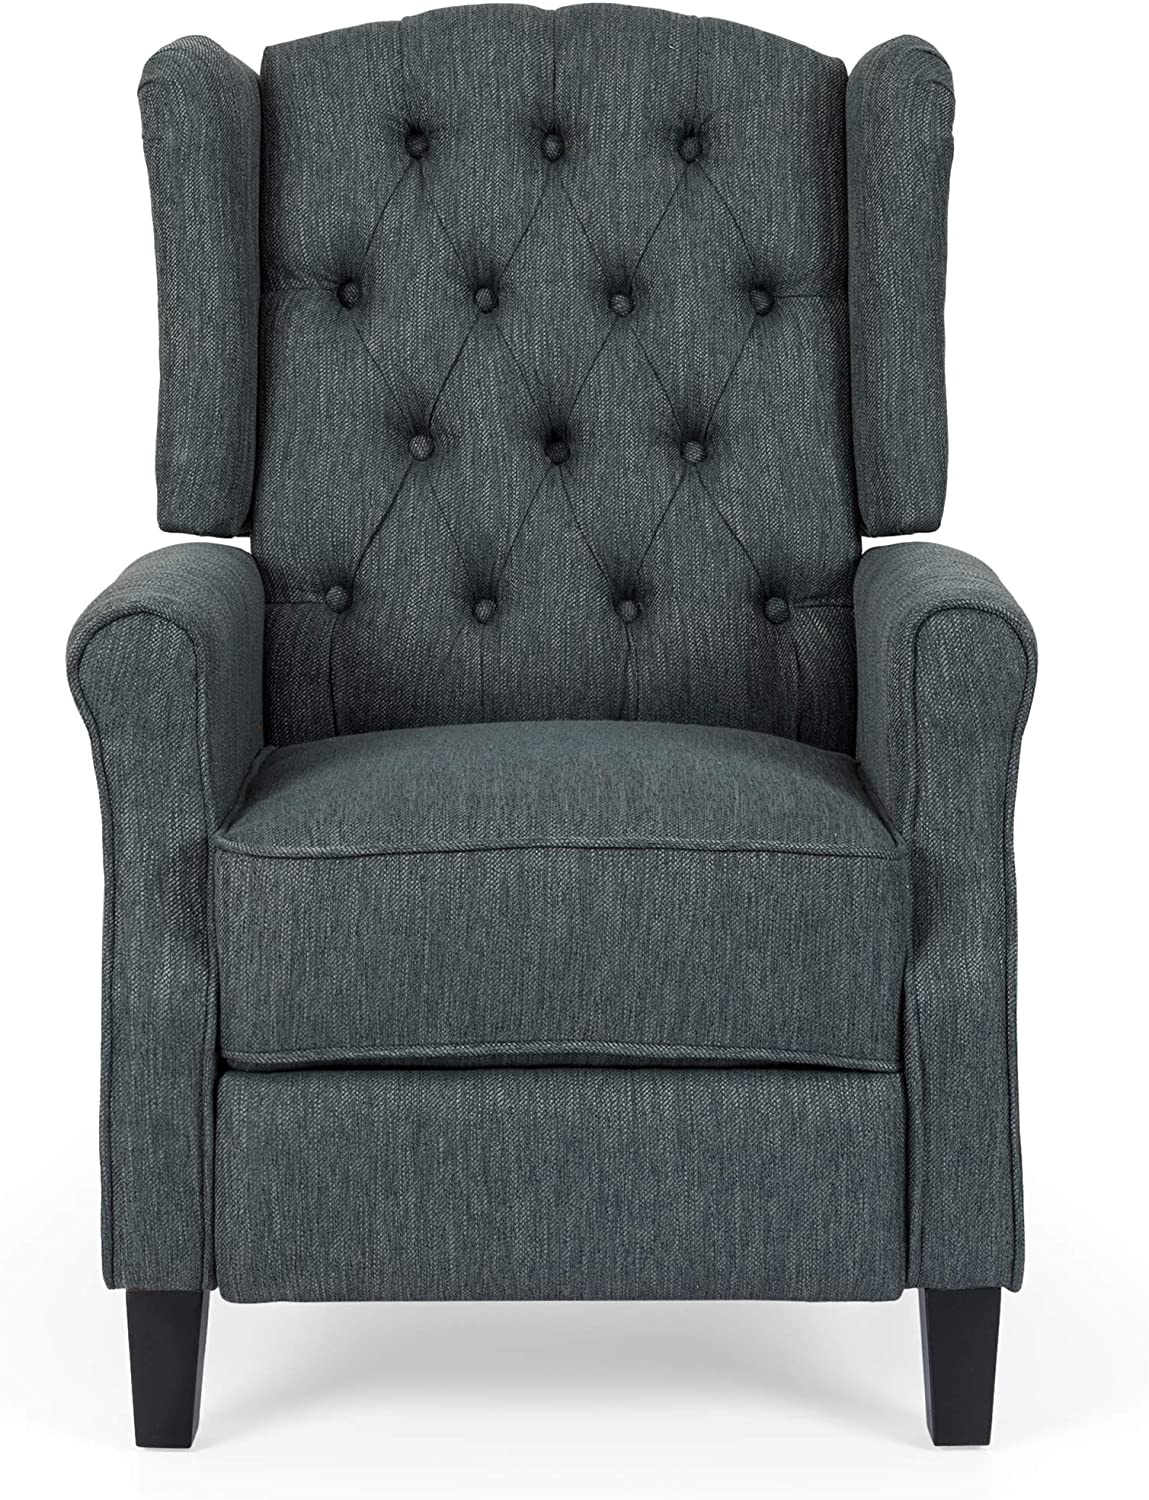 Christopher Knight Home Sarah Fabric Recliner, Charcoal, Dark Brown